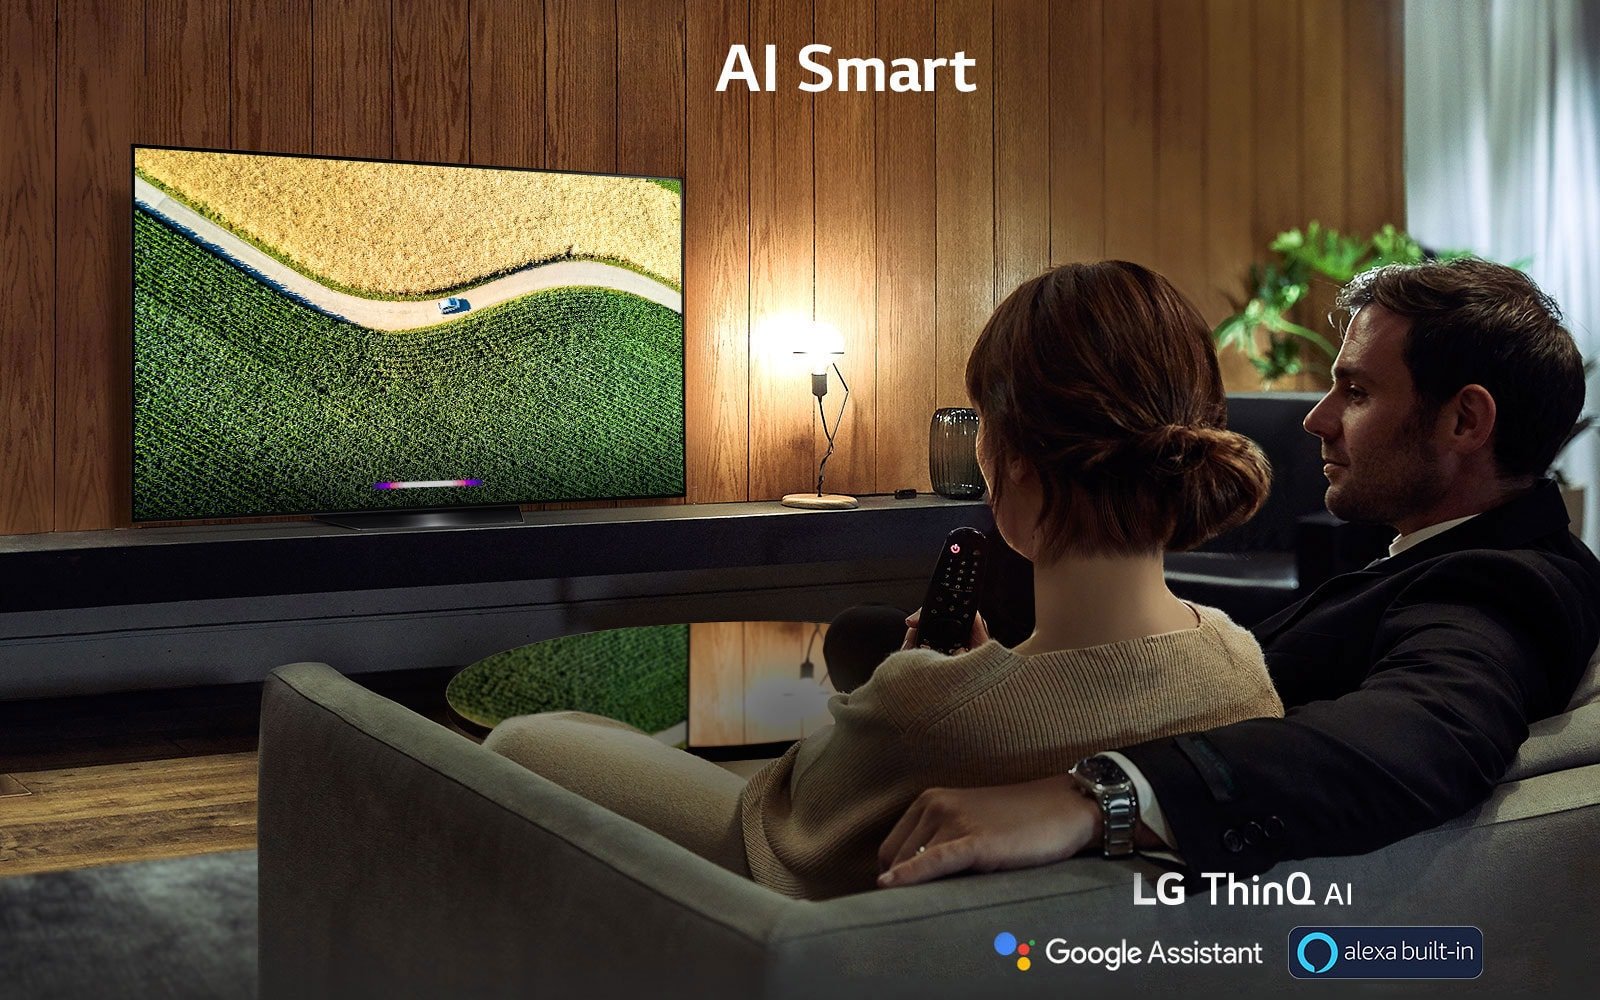 LG AI Smart OLED TV